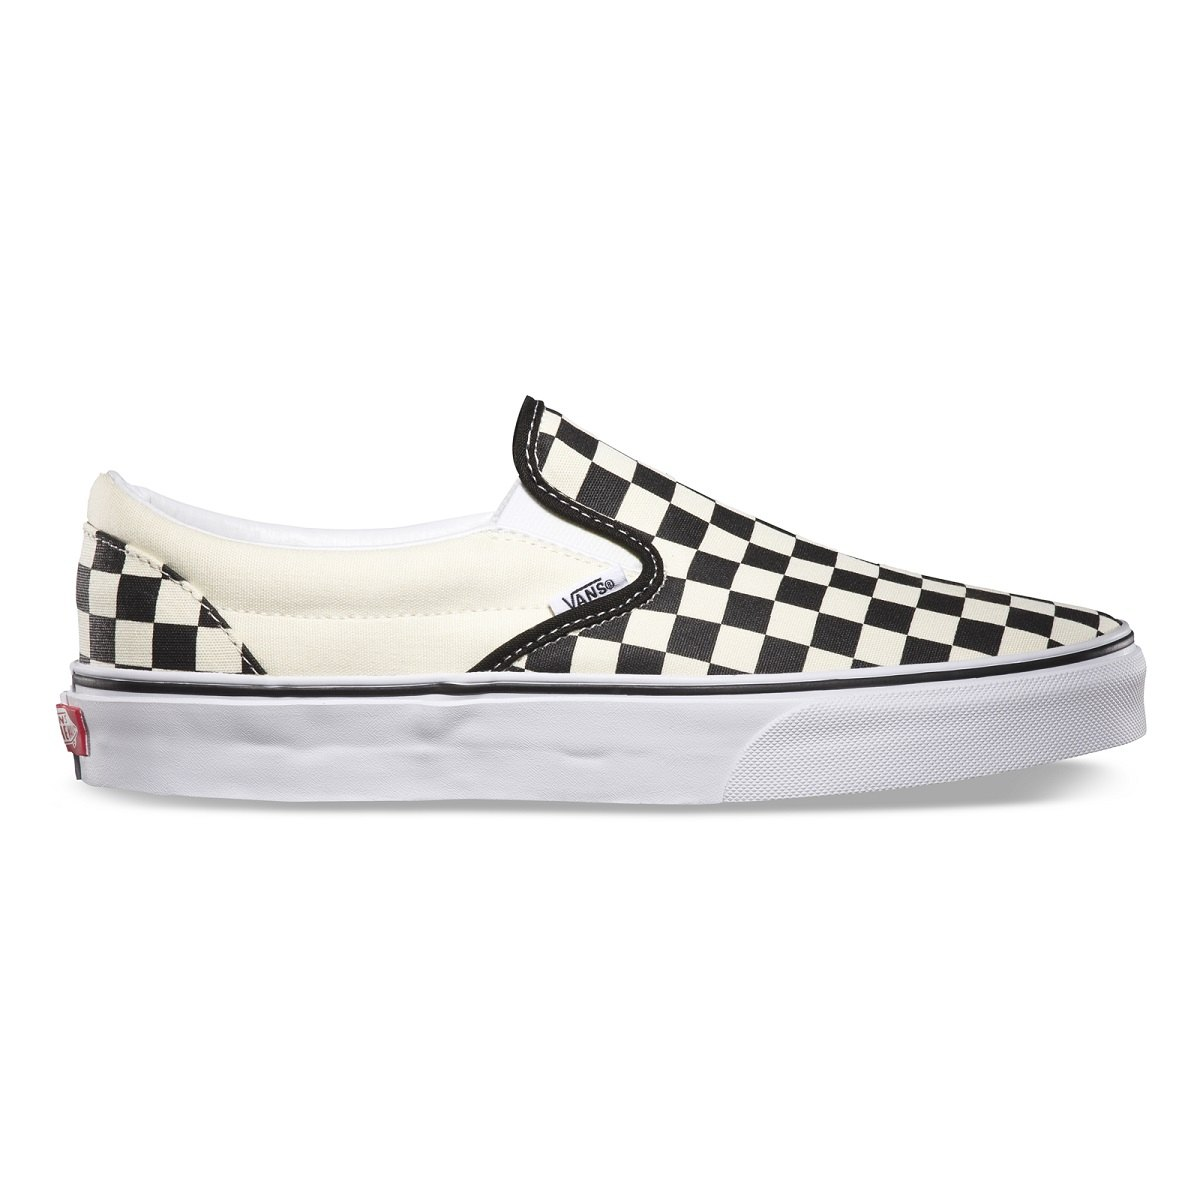 vans classic slip ons shoes sneakers trainers women 39 s men 39 s ebay. Black Bedroom Furniture Sets. Home Design Ideas